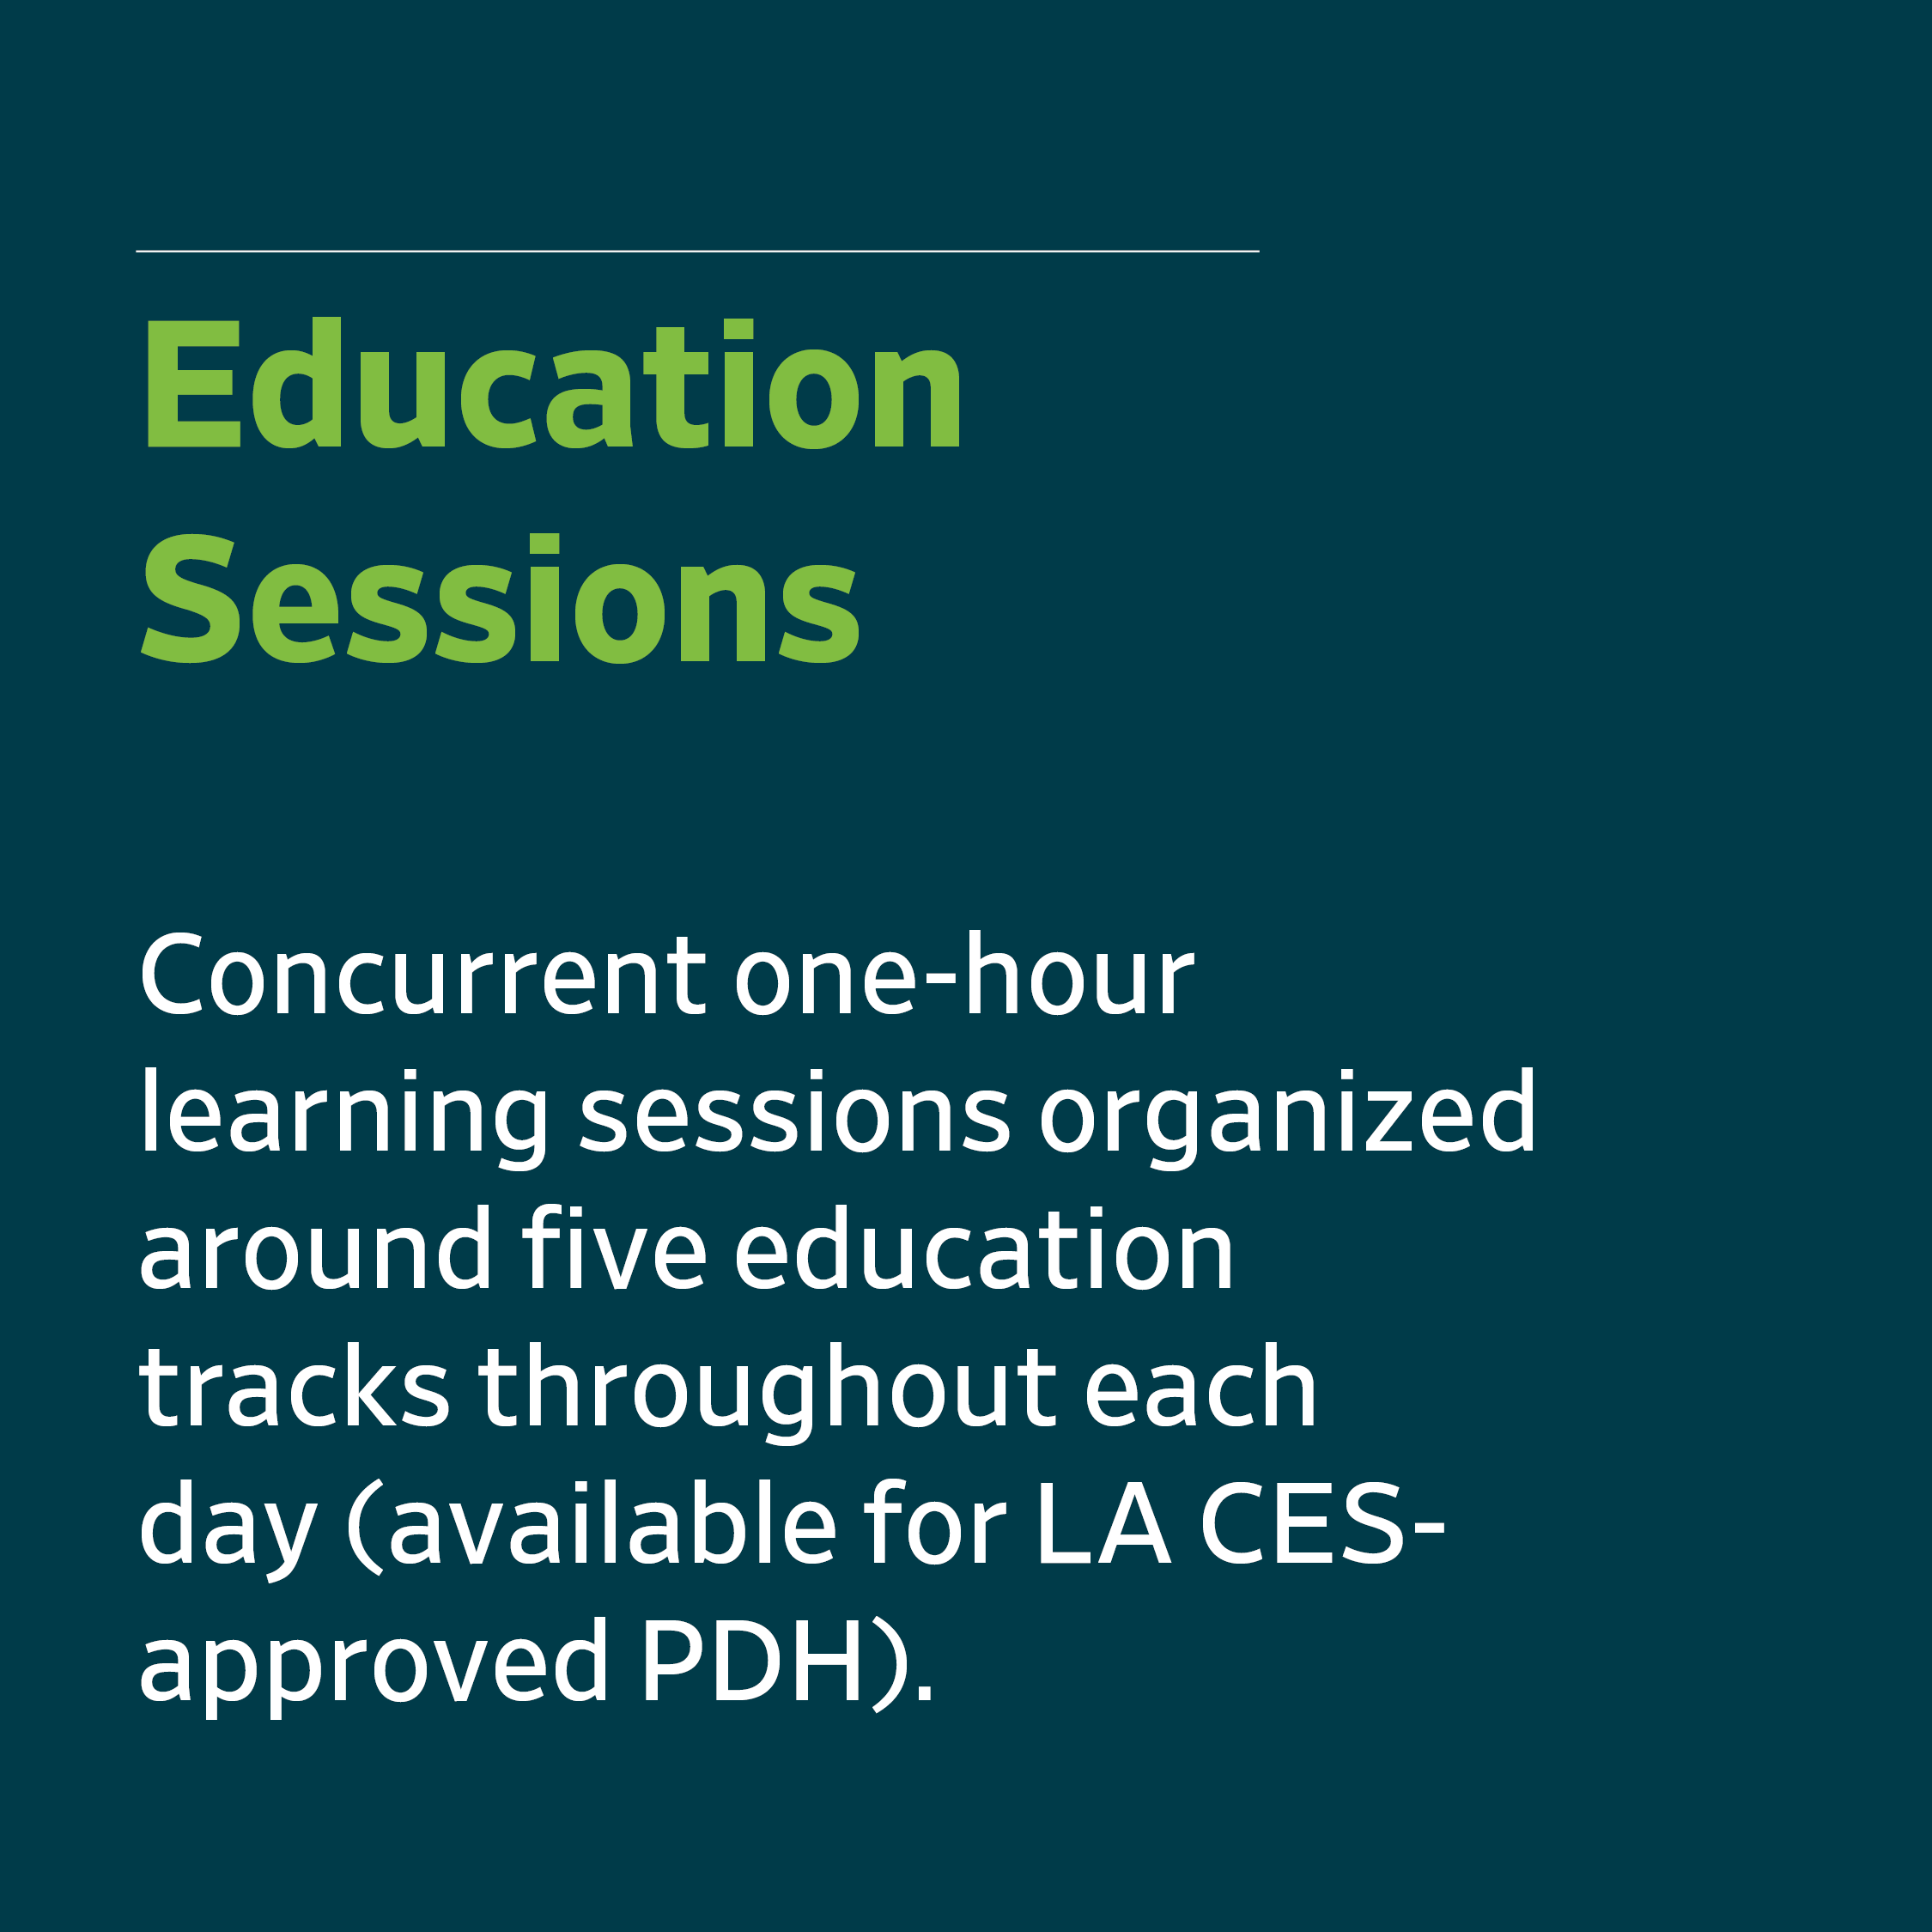 Education Sessions - Concurrent one-hour learning sessions organized around five education tracks throughout each day (available for LA CES-approved PDH).